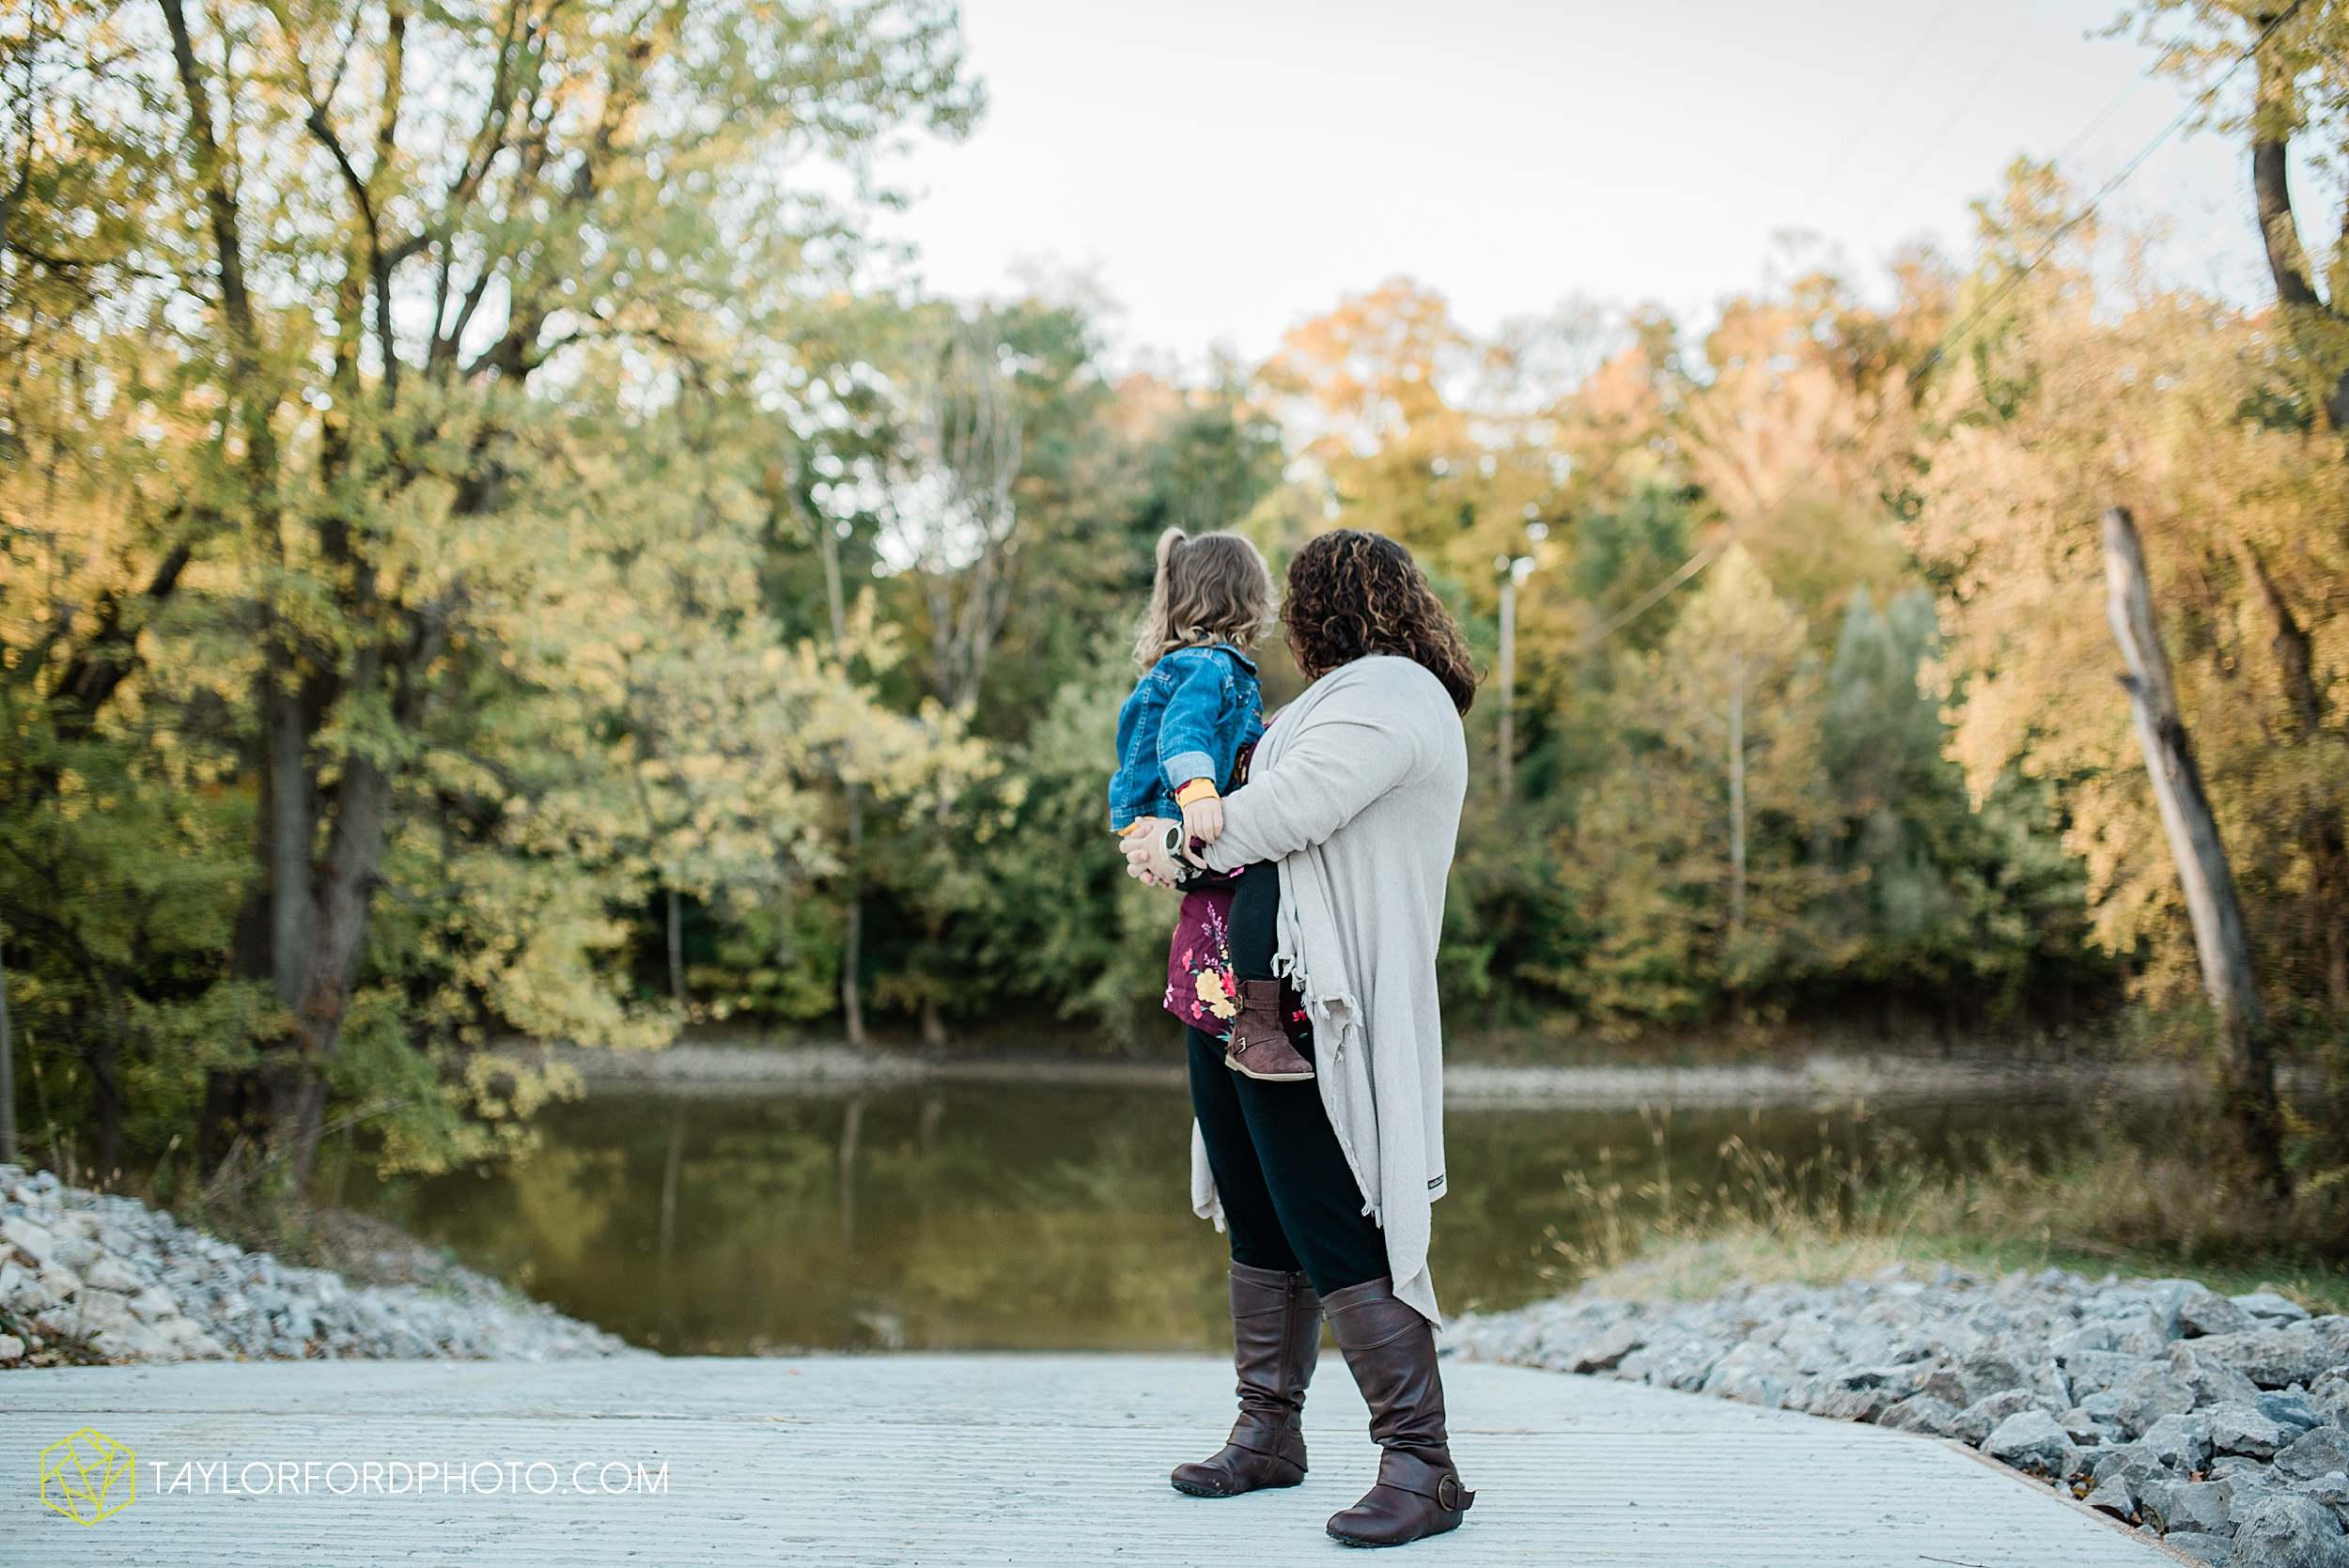 hogan-northeast-fort-wayne-indiana-family-fall-photographer-taylor-ford-photography_1375.jpg